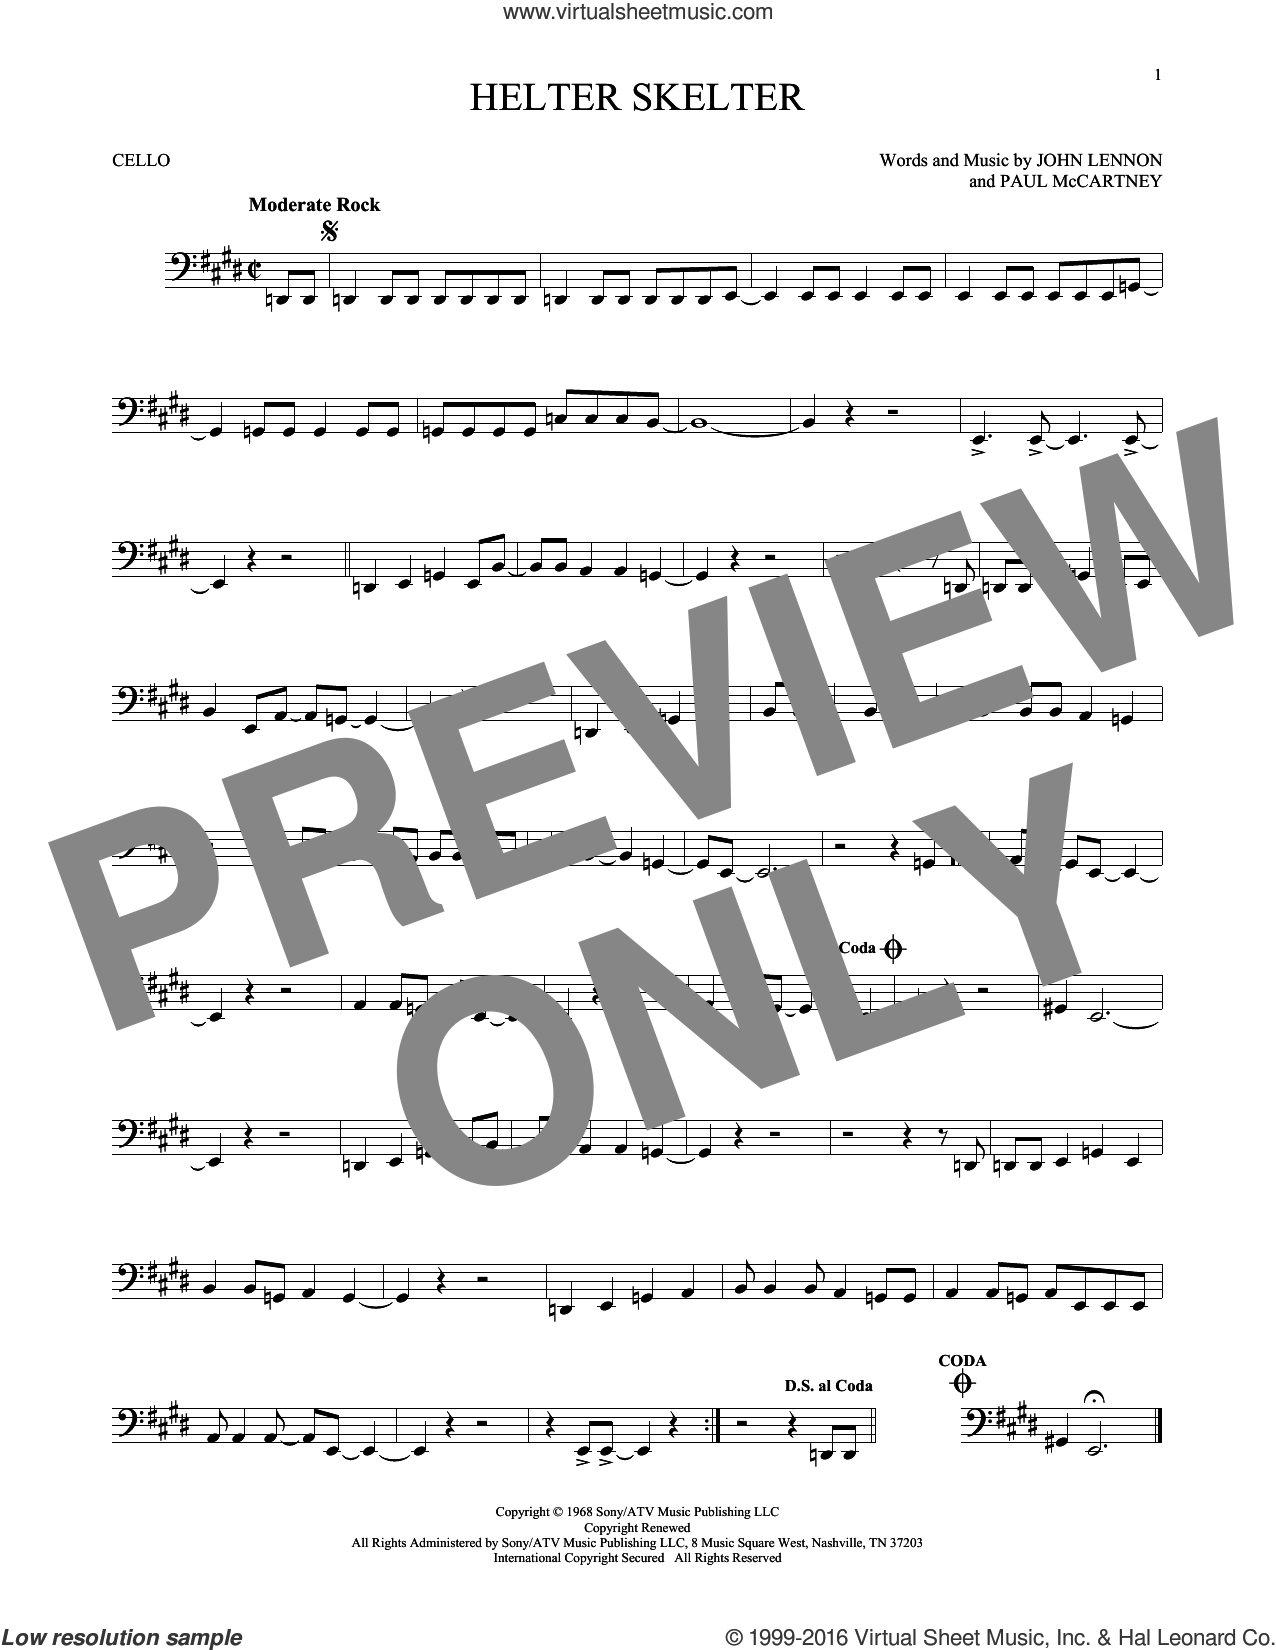 Helter Skelter sheet music for cello solo by The Beatles, John Lennon and Paul McCartney, intermediate skill level